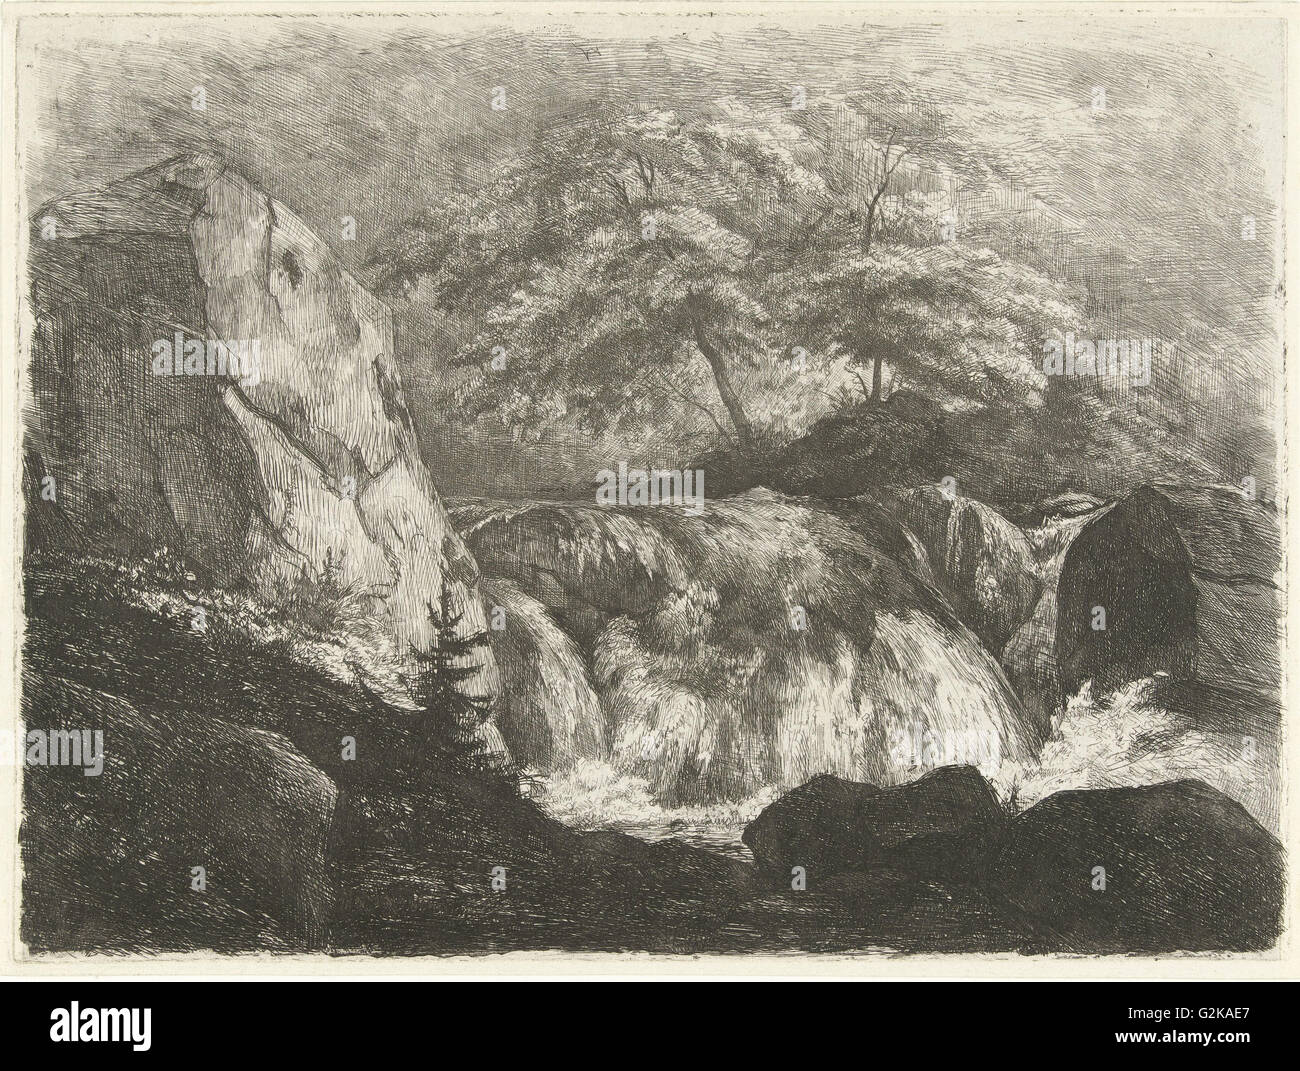 Rocky Landscape with Waterfall, Pierre Louis Dubourcq, 1830 - 1858 - Stock Image